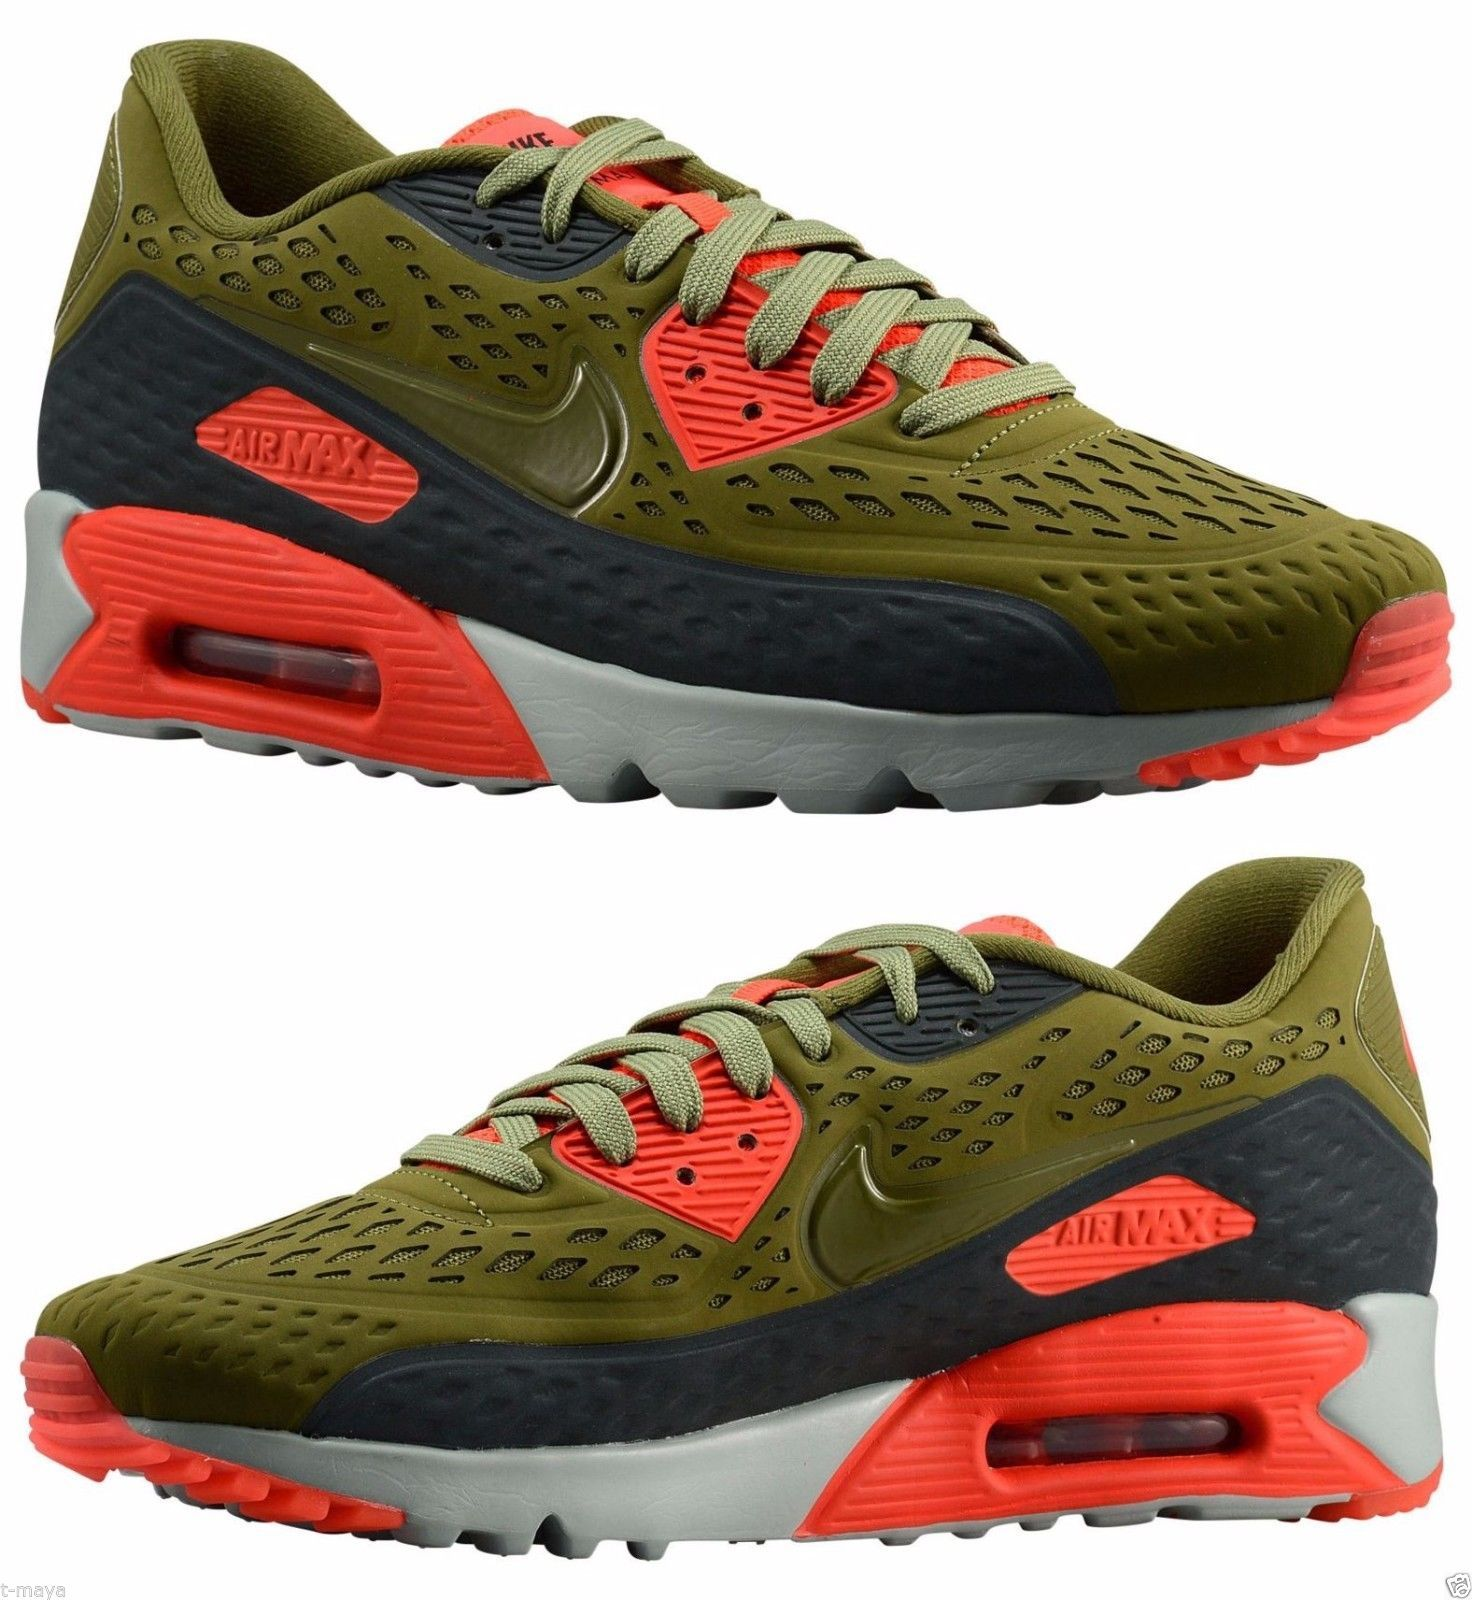 online store 2bc61 19f01 NIKE AIR MAX 90 ULTRA SCENERY GREEN BRIGHT CRIMSON 776661 300  199